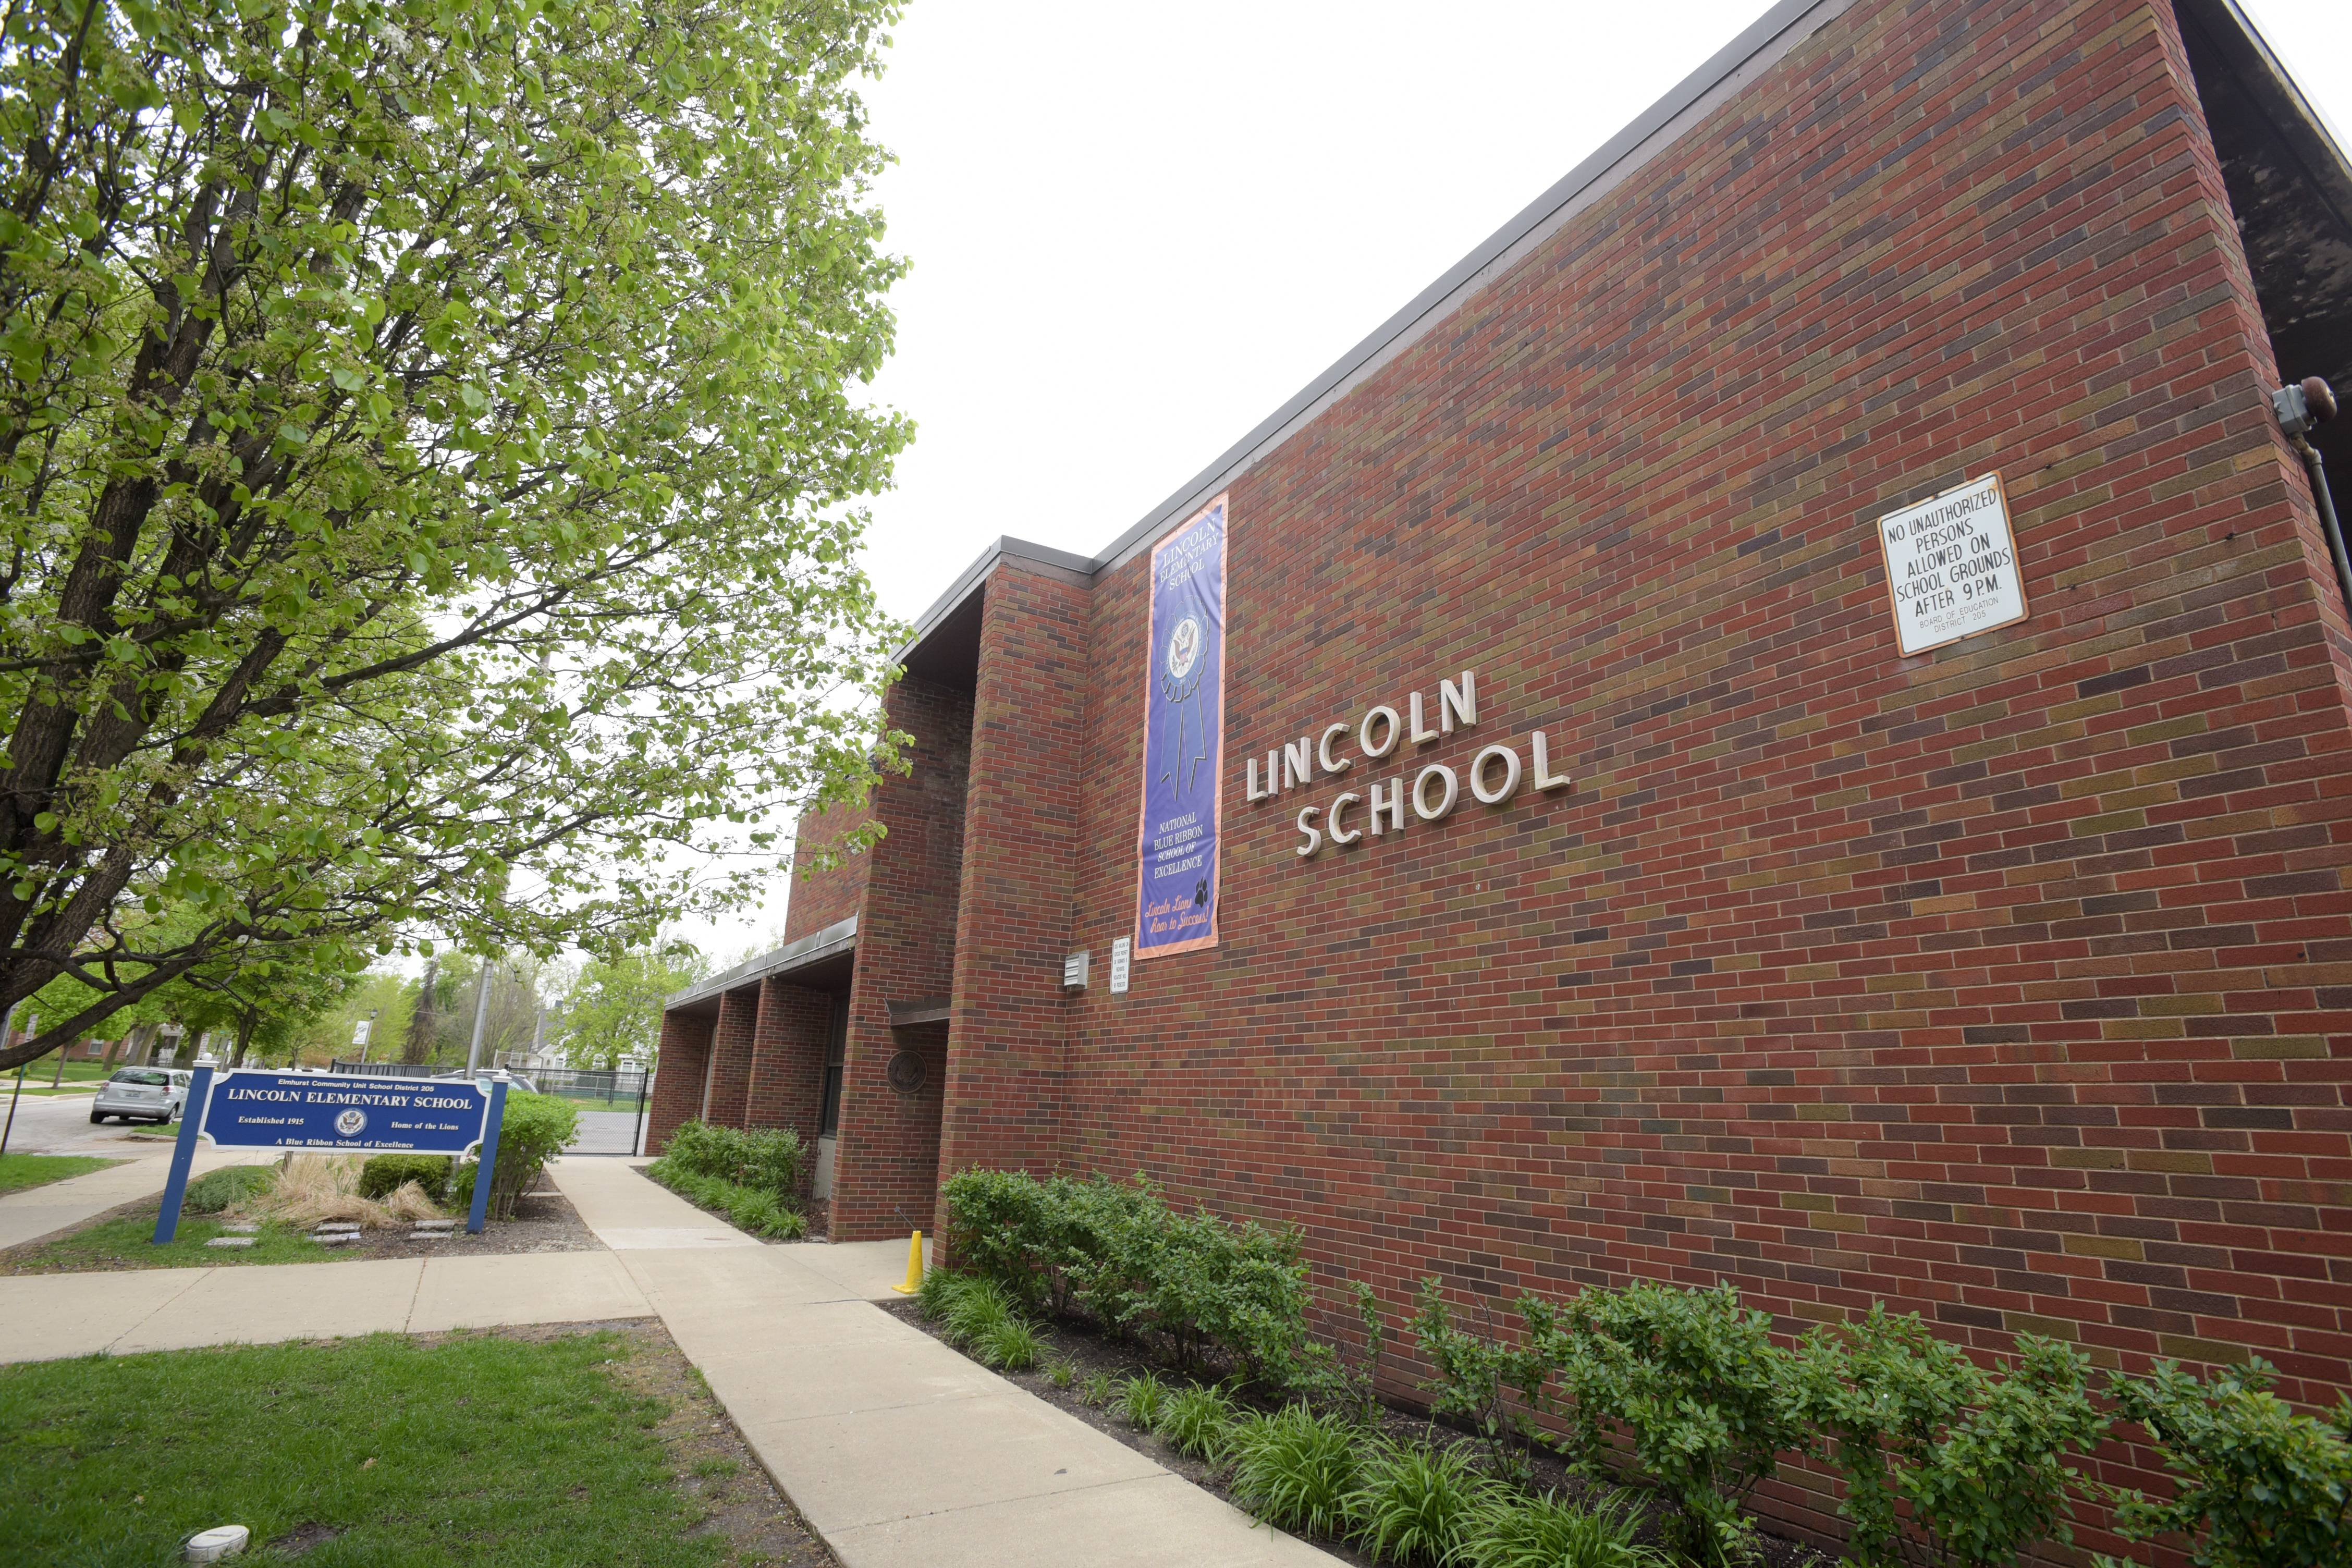 Daily Herald file photoSchool board members are expected to decide Tuesday if Elmhurst Unit District 205 will seek a property tax increase in November to pay for building projects, including a proposal to replace Lincoln Elementary School.